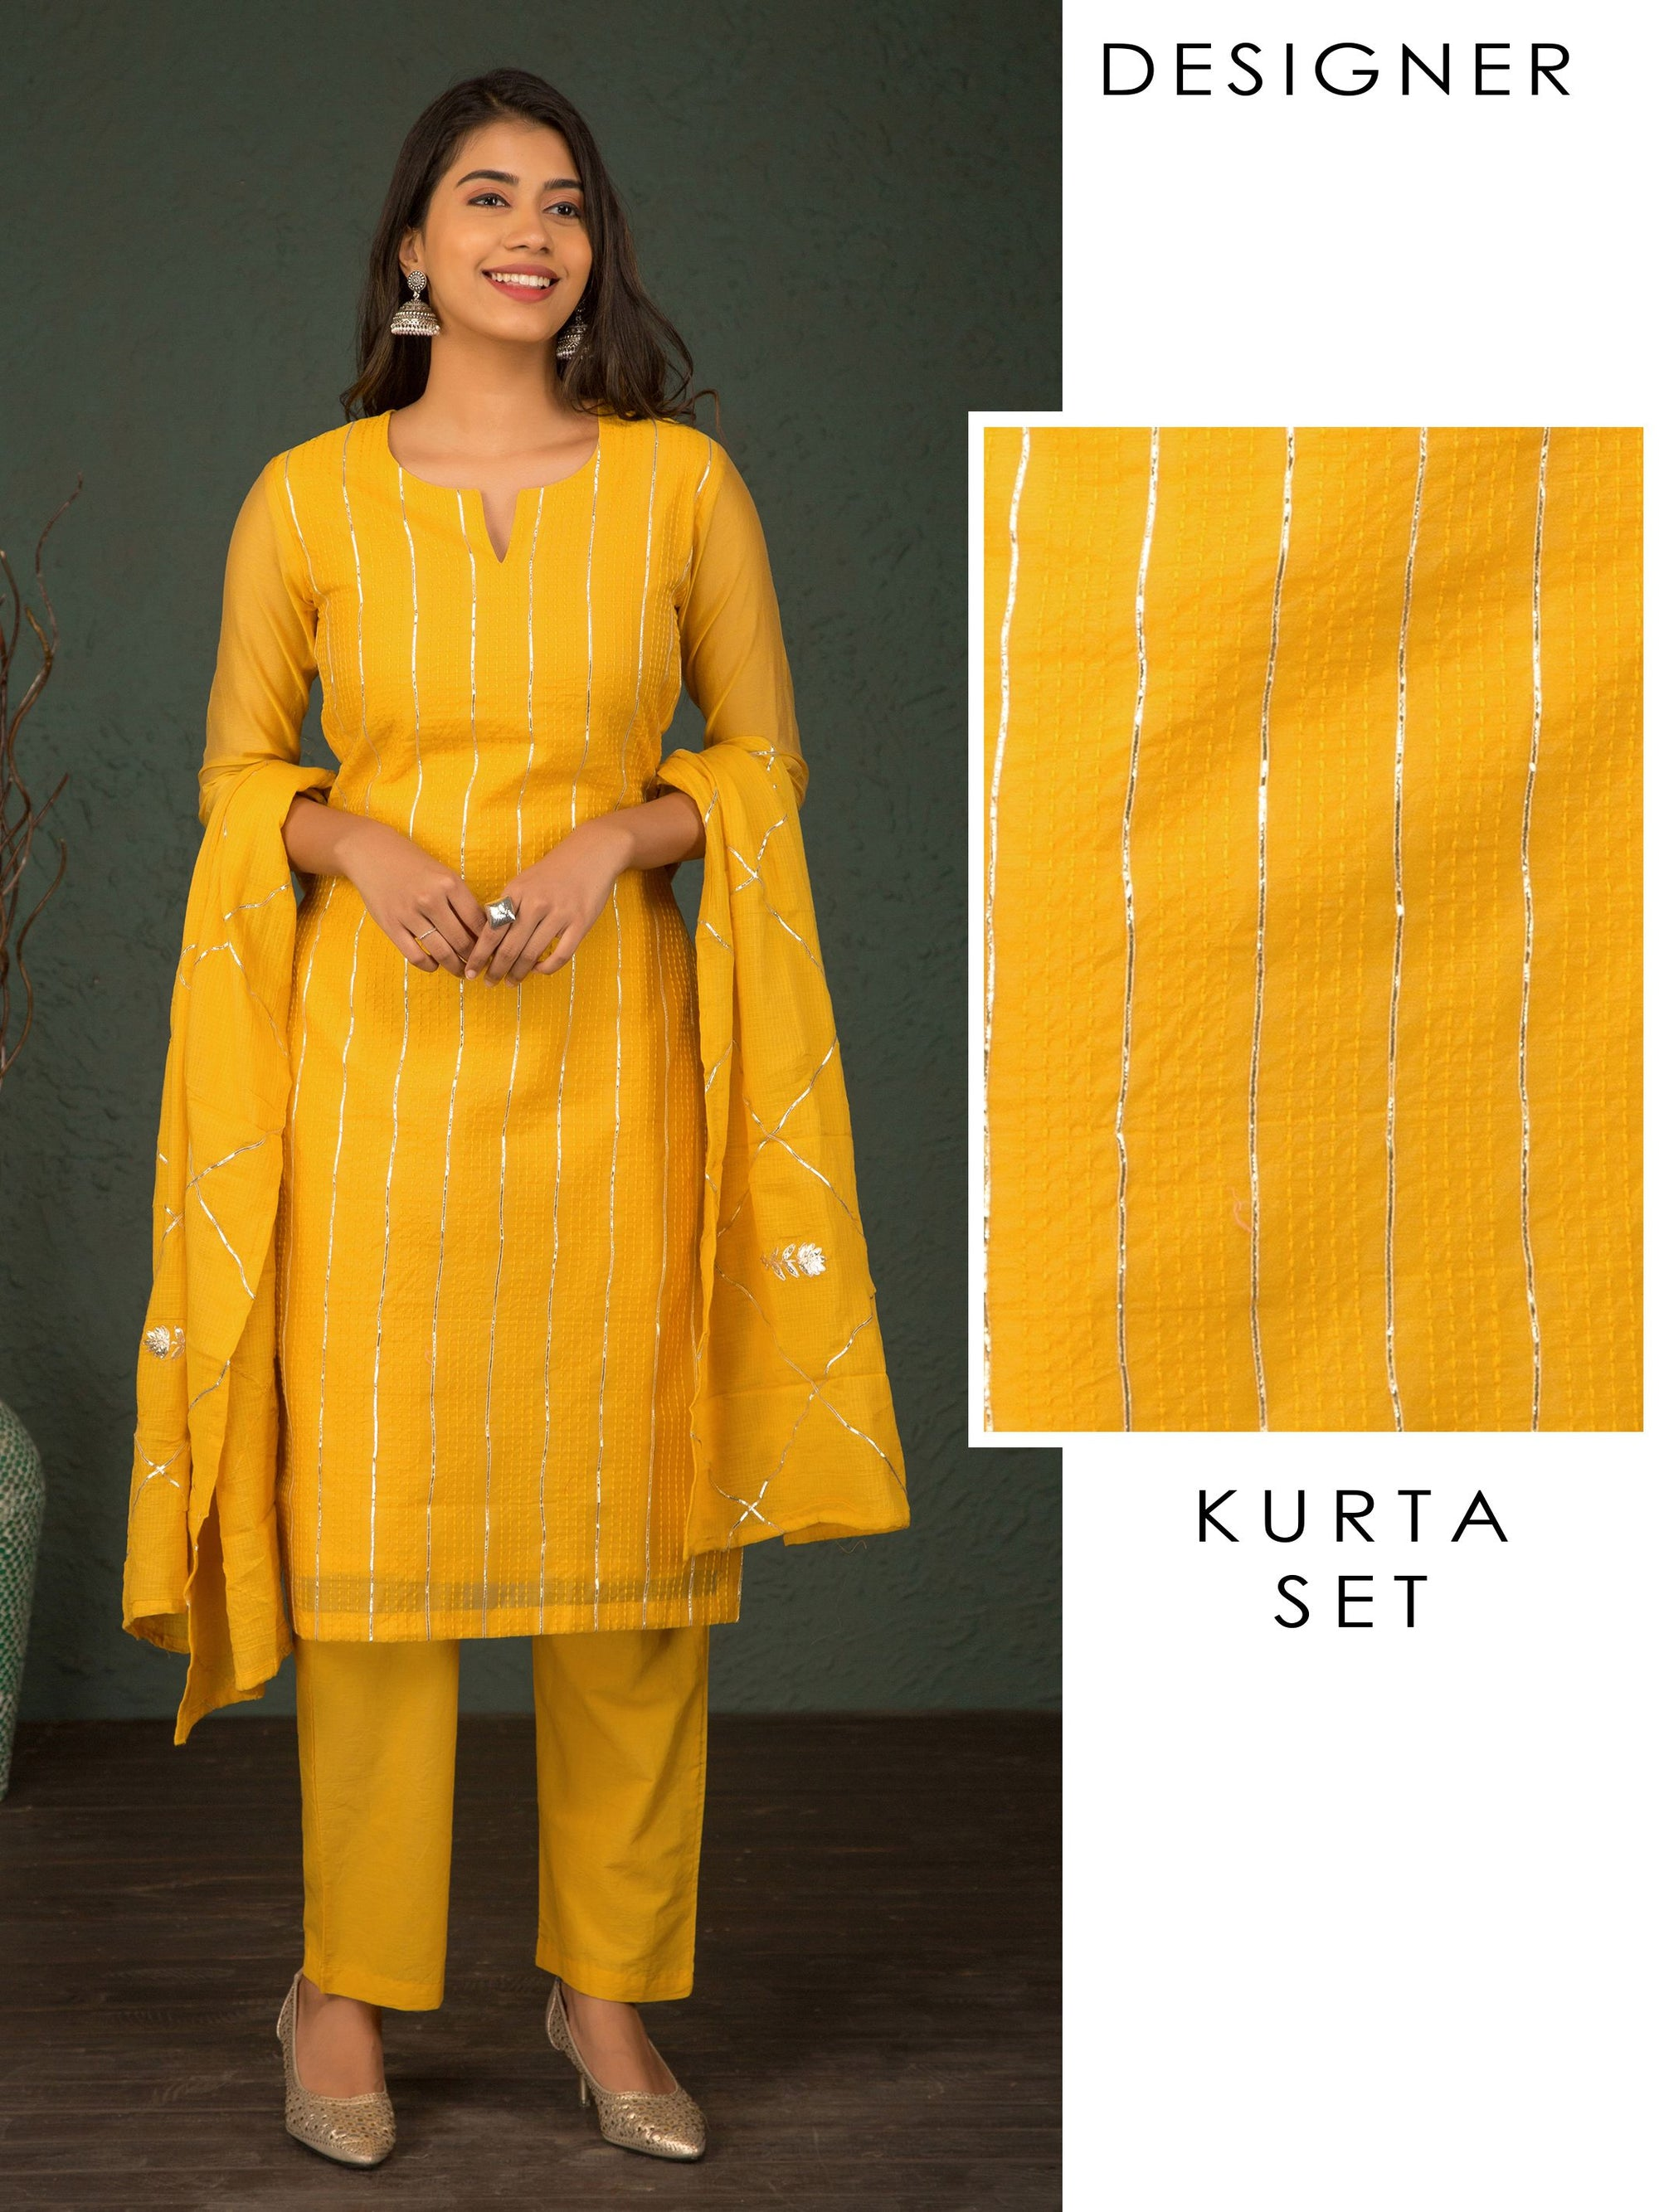 Running Stitch Design With Gota Lace Kurta, Floral Gota Dupatta & Pant - Yellow